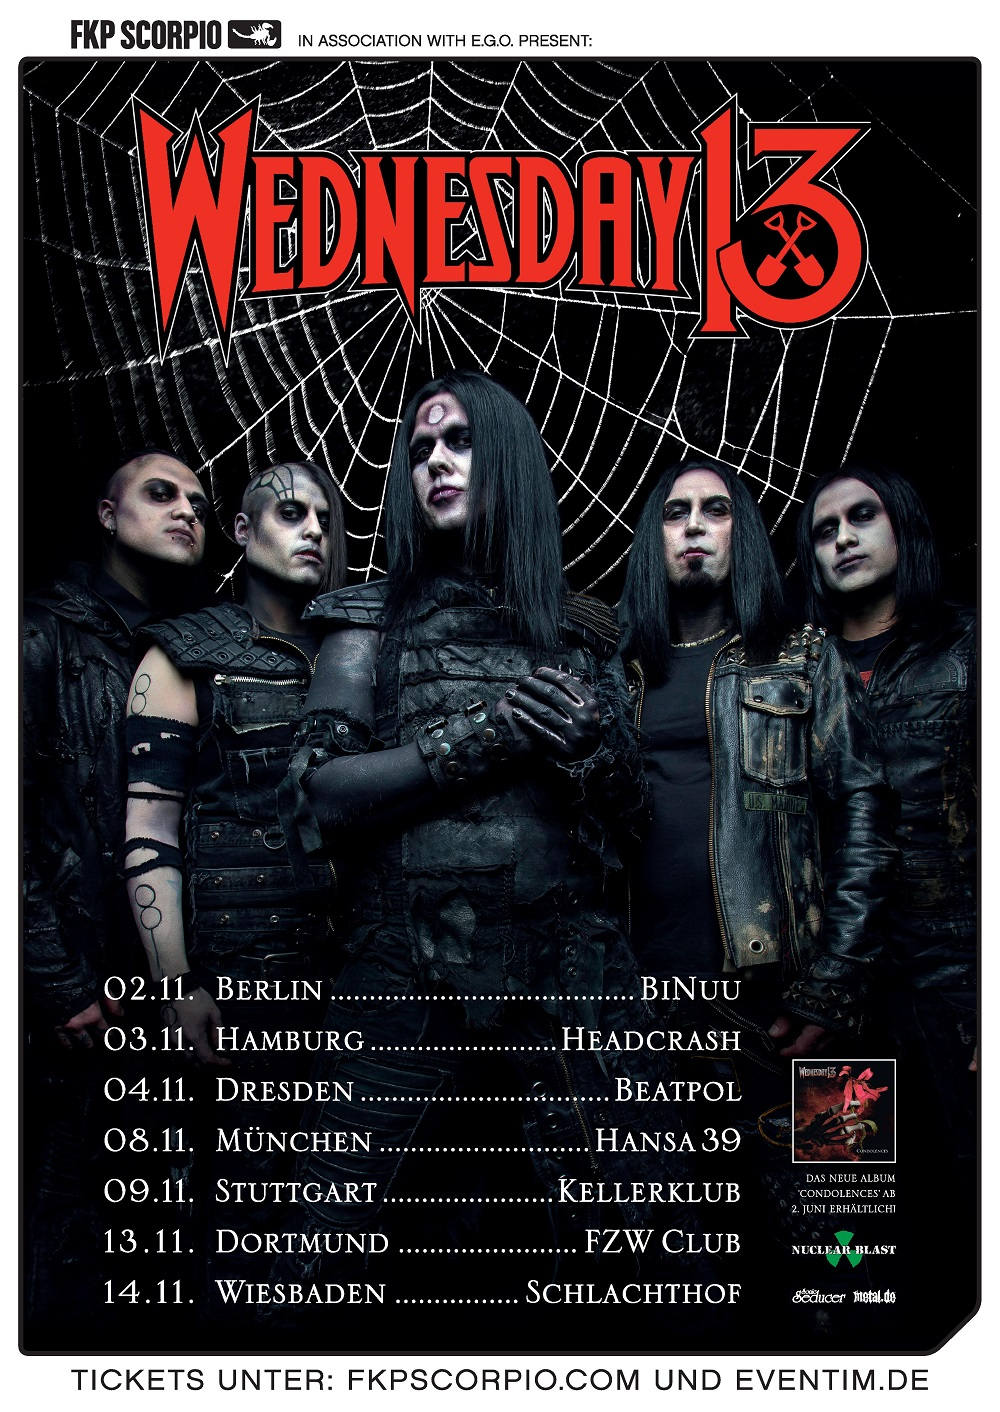 Bild Wednesday 13 Tourposter November 2017